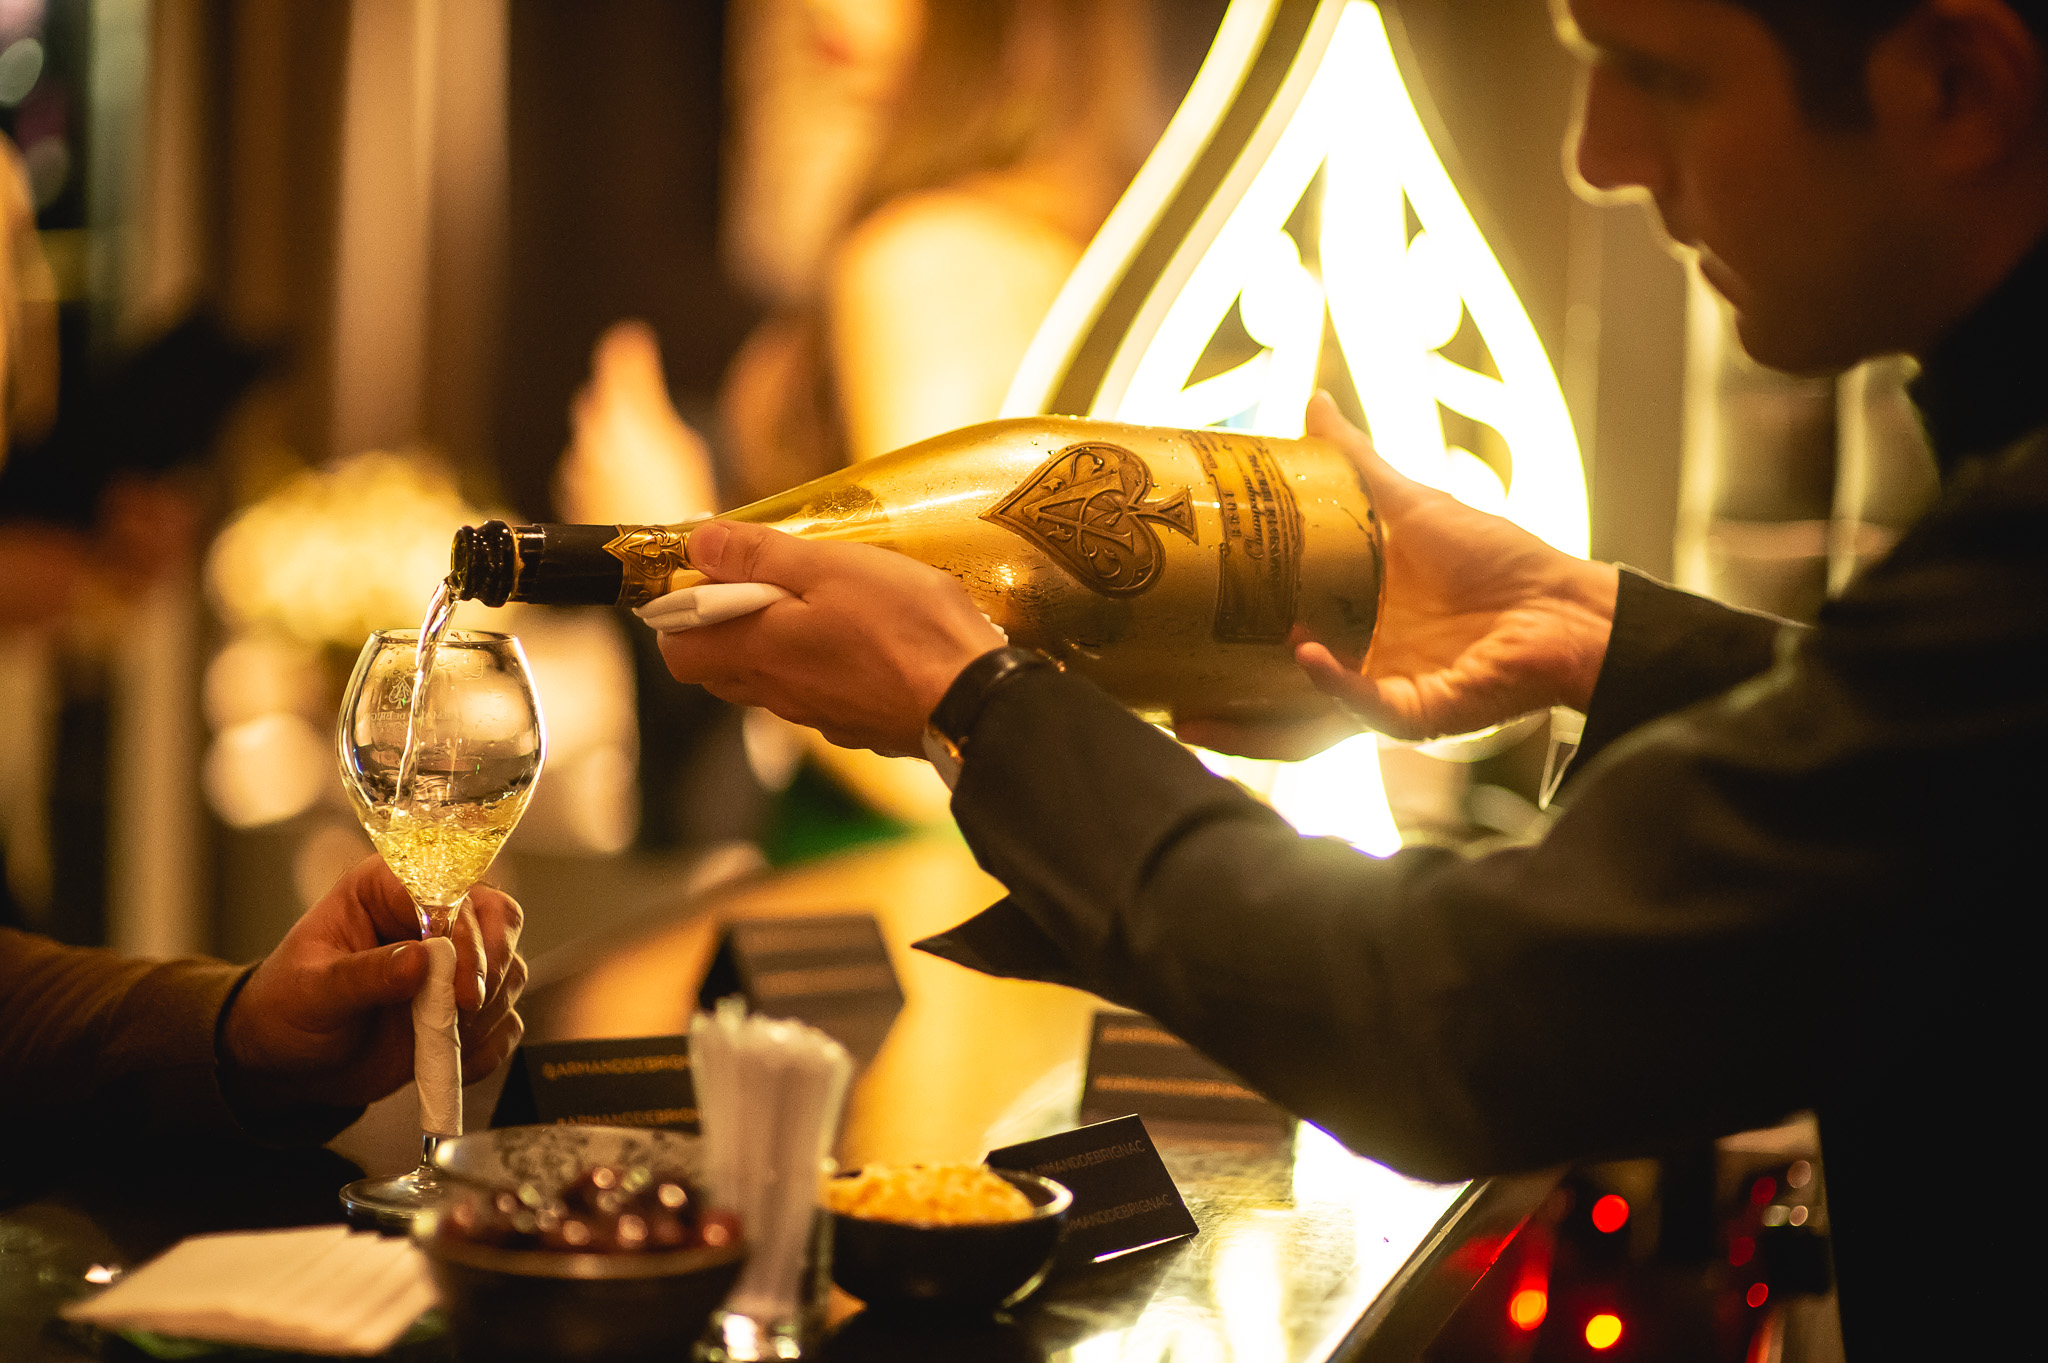 Funky Gourmet Celebrates 10th Anniversary With Launch of Armand De Brignac Pairing Menu - Armand de Brignac Champagne